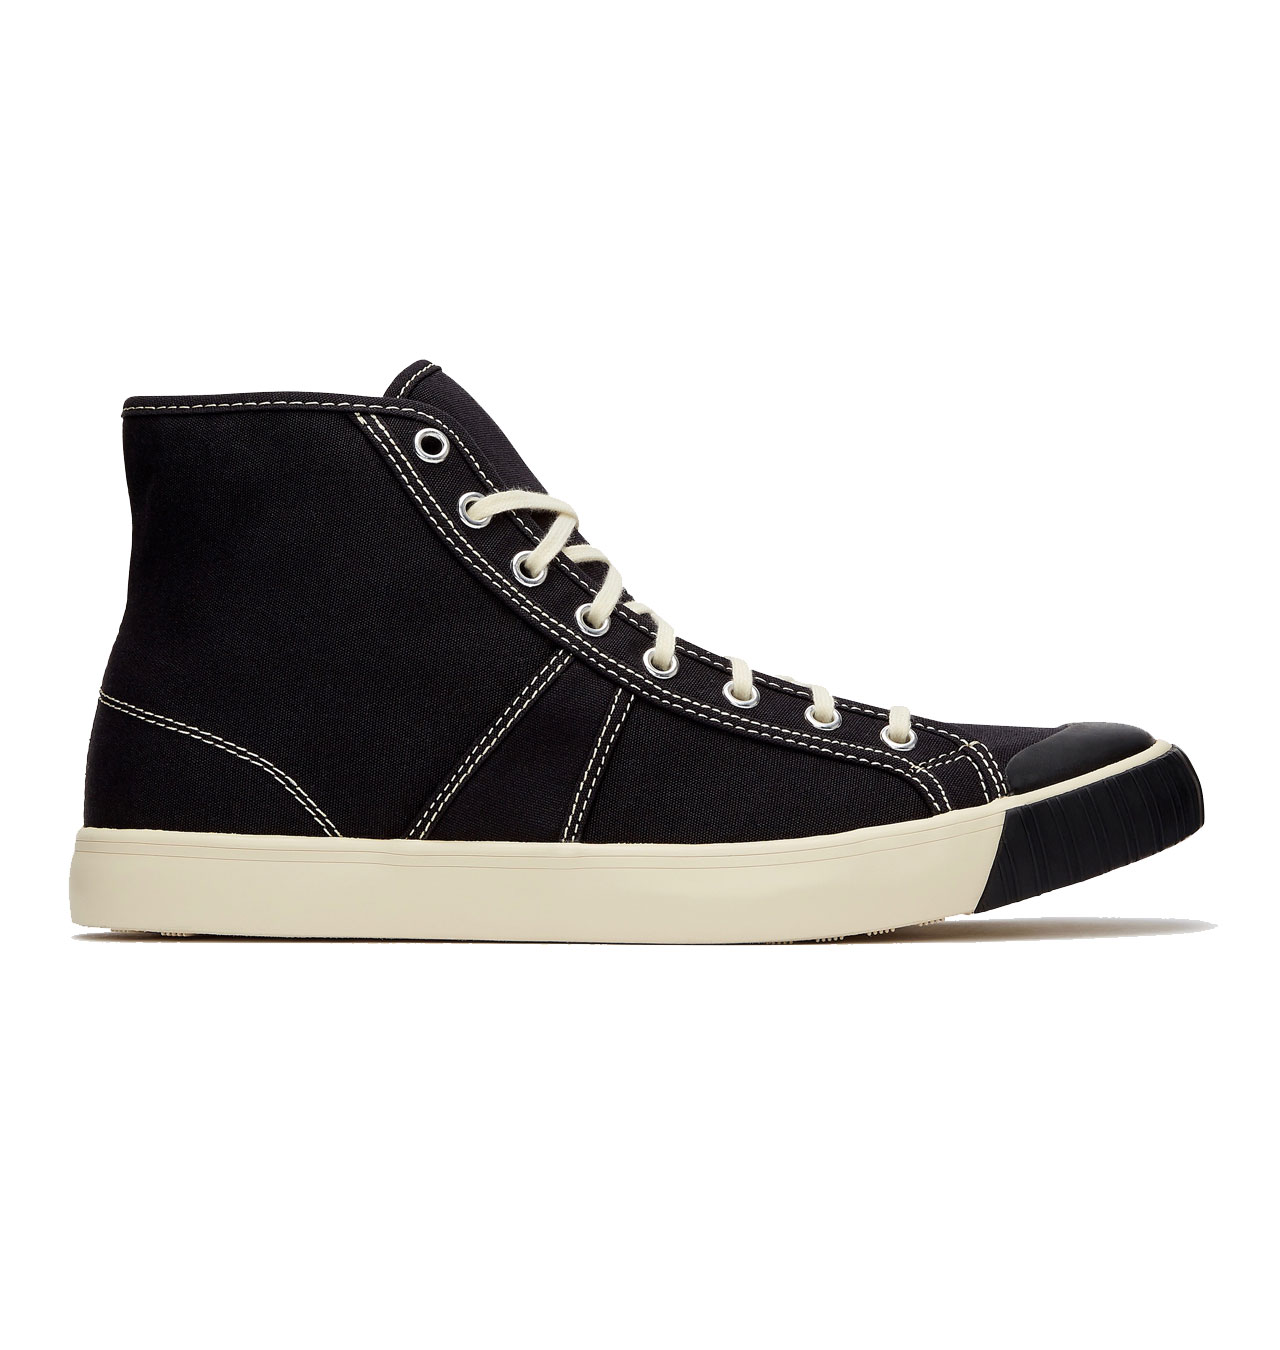 Colchester Rubber Co - 1892 National Treasure High Top - Coal Black